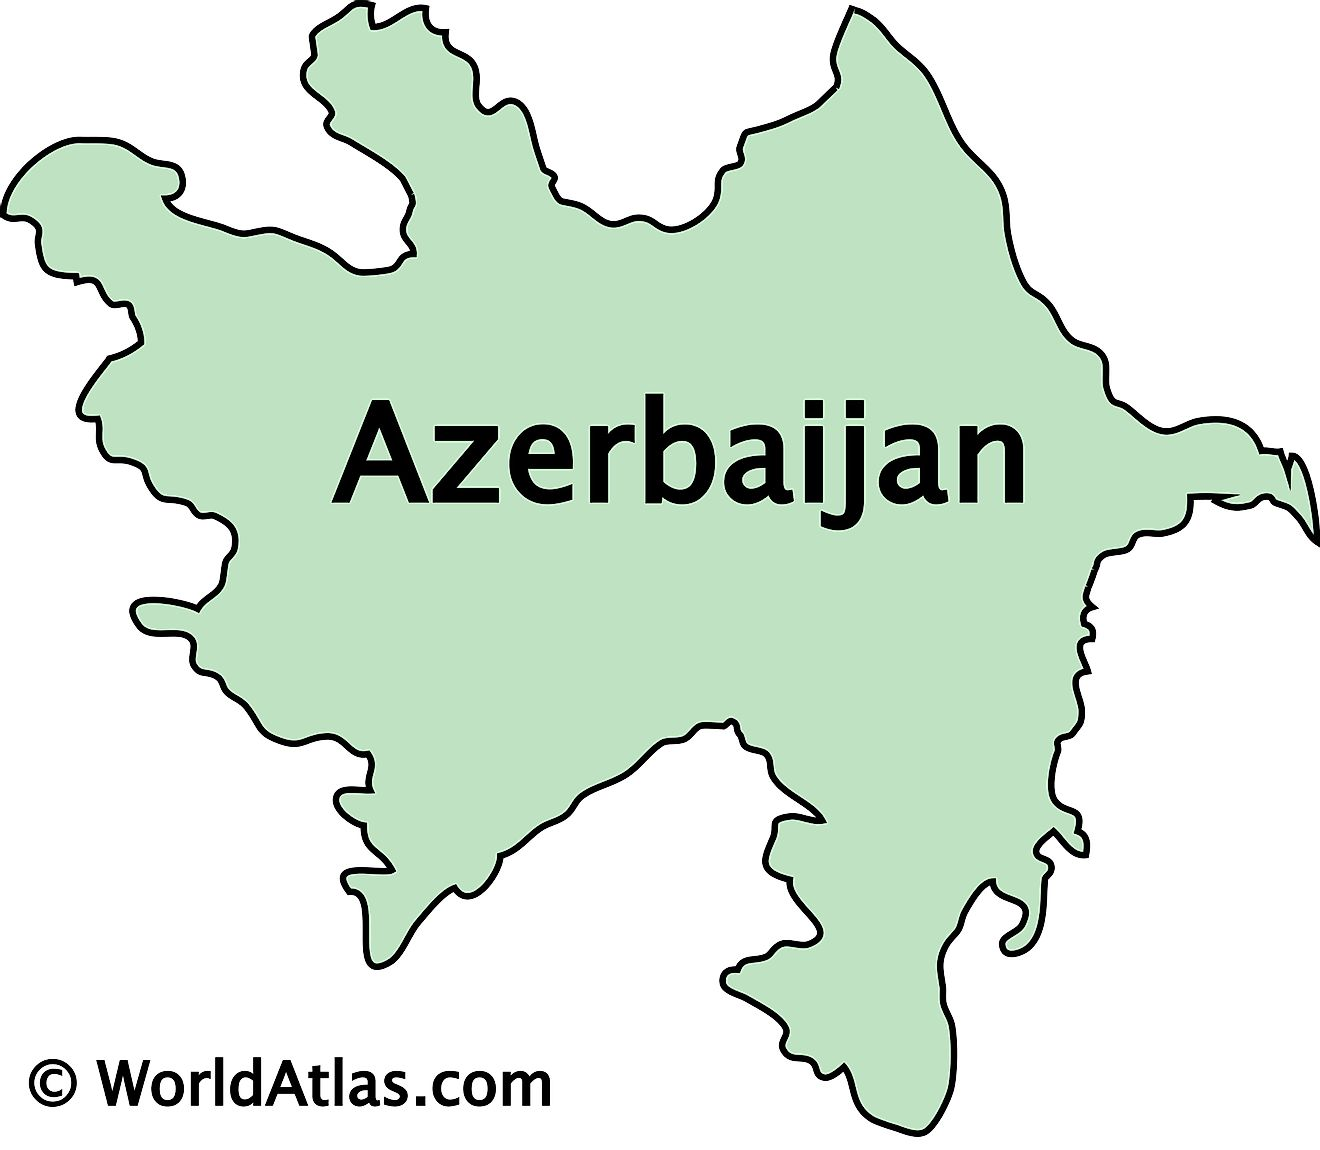 Outline Map of Azerbaijan